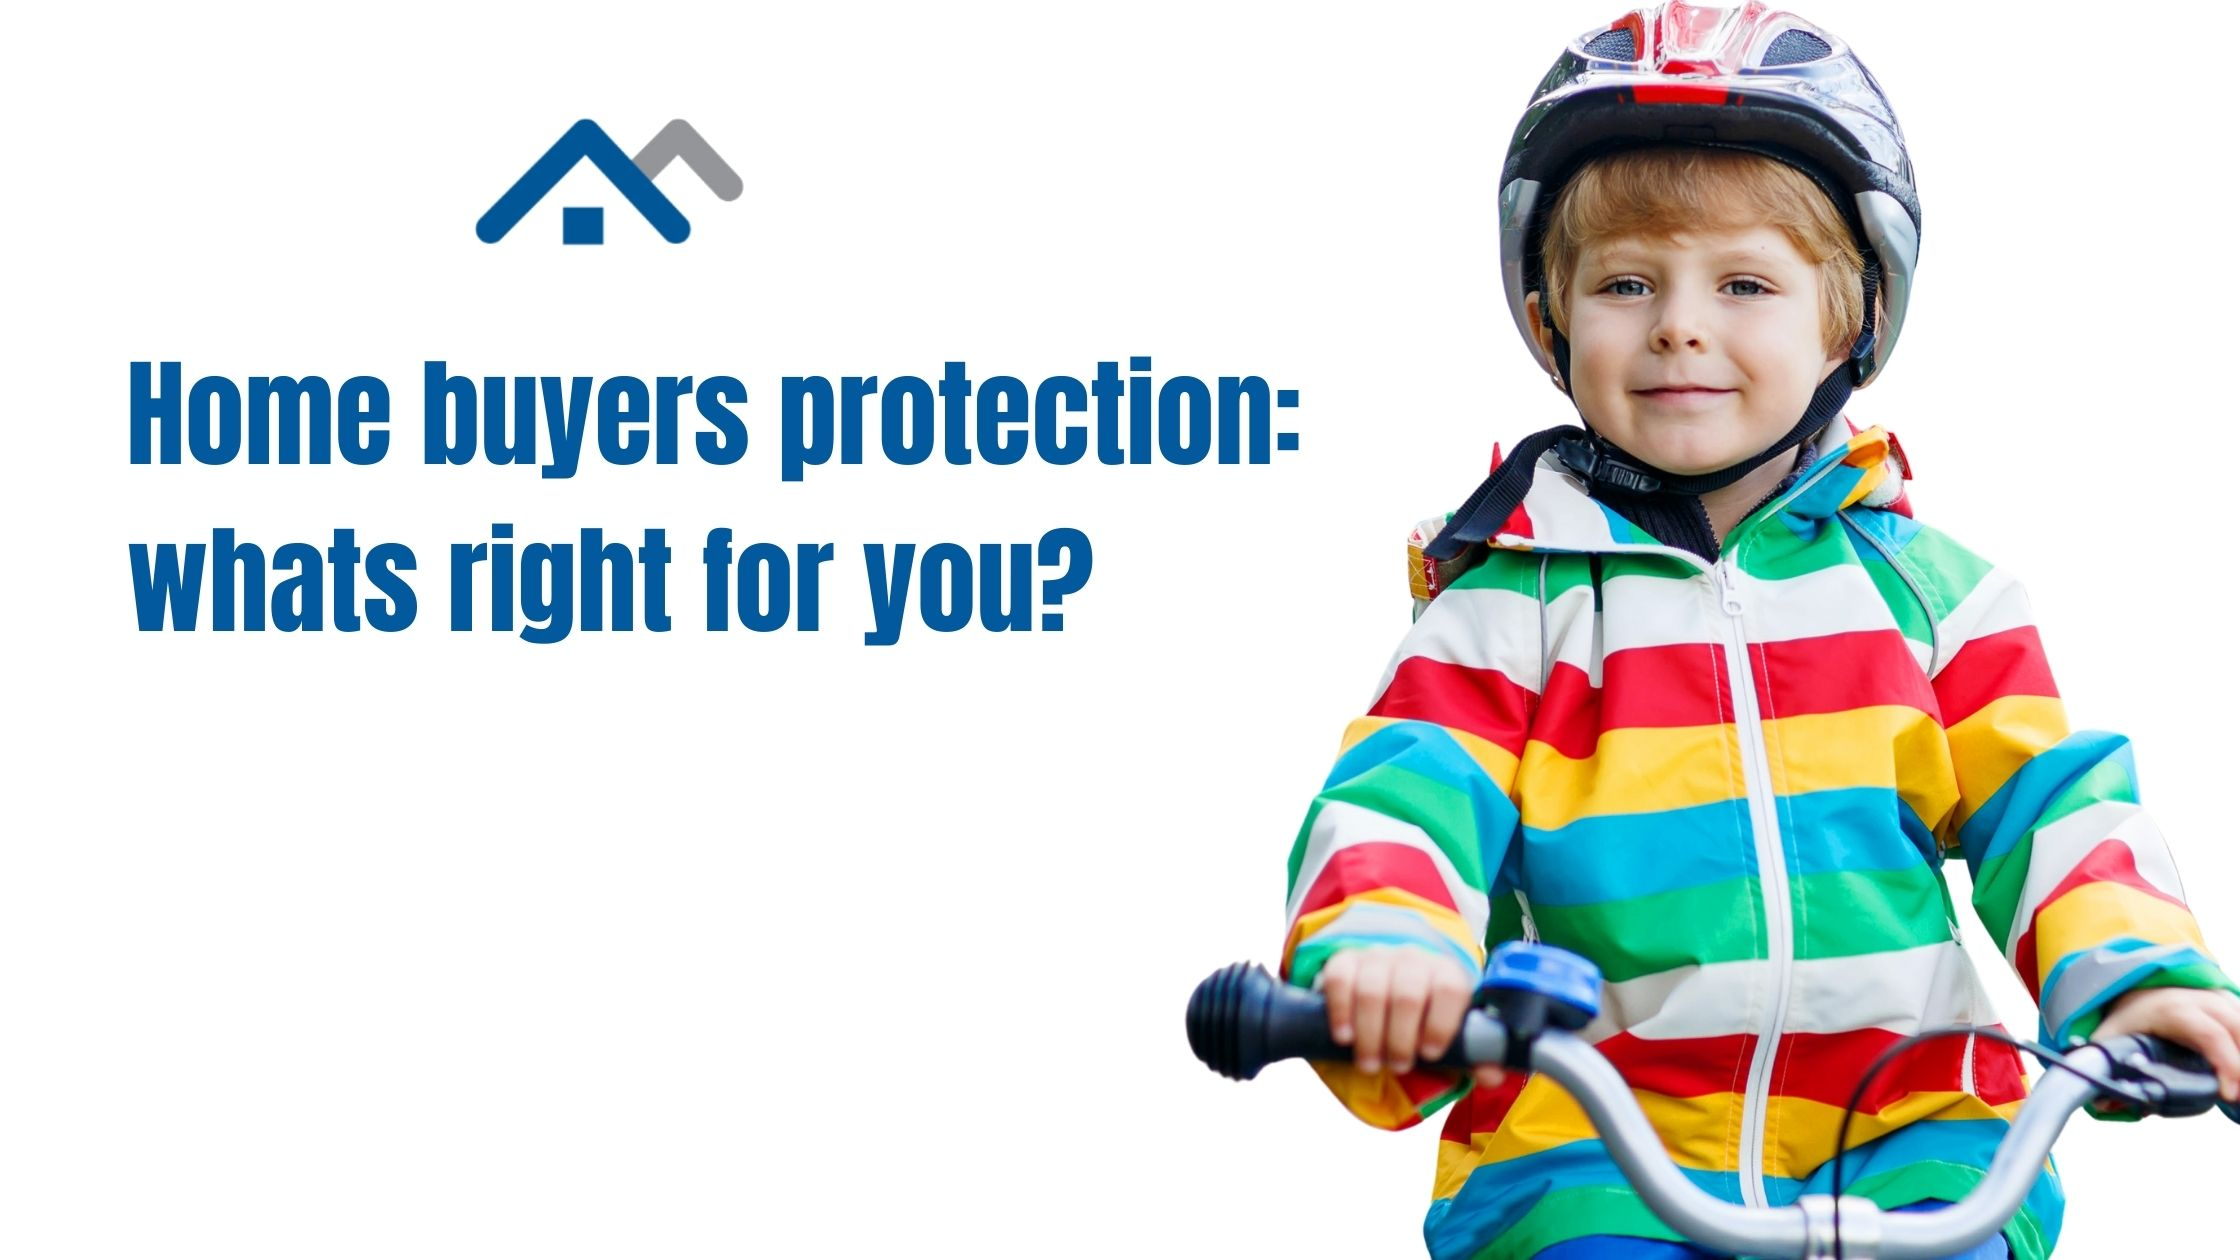 Home buyer protection: Whats right for you?